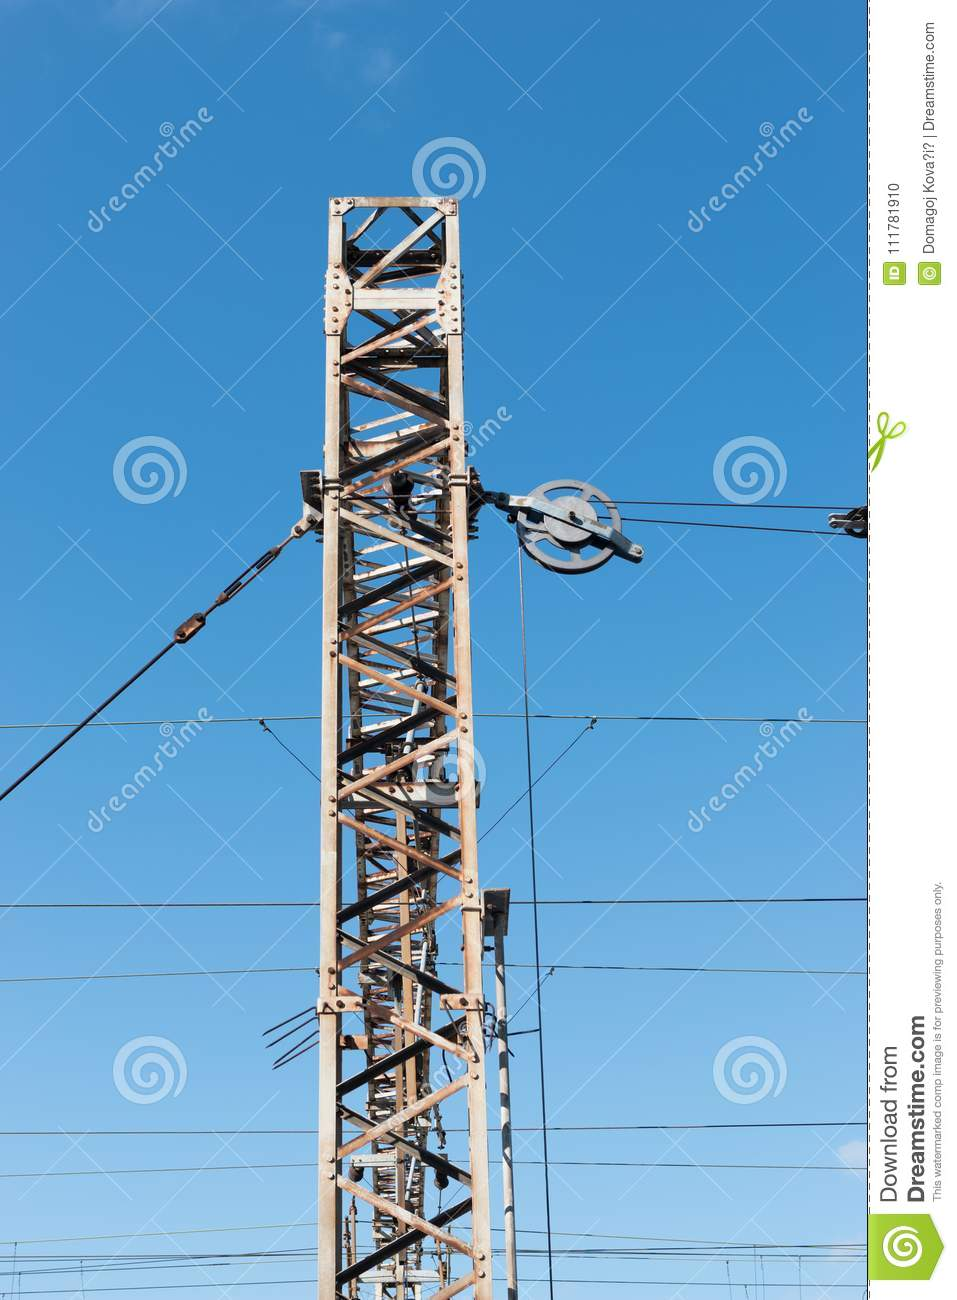 Train or railway power line support. Railway power lines with high voltage electricity on metal poles against blue sky.